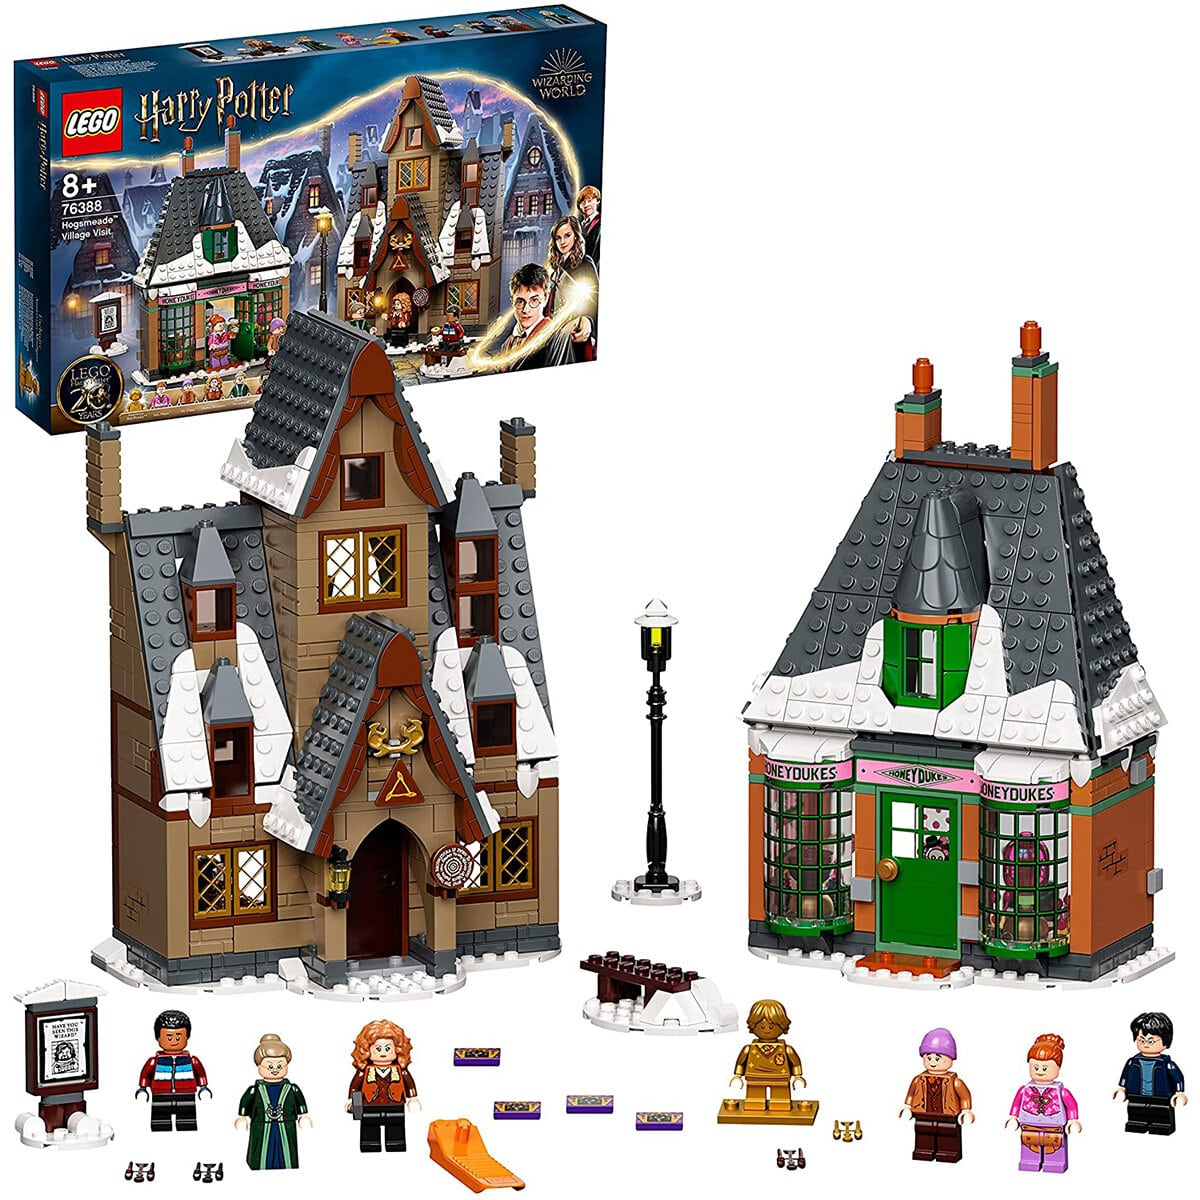 https://www.hellobricks.com/wp-content/uploads/2021/04/LEGO-Harry-Potter-76388-Hogsmeade-Village-Visit.jpg